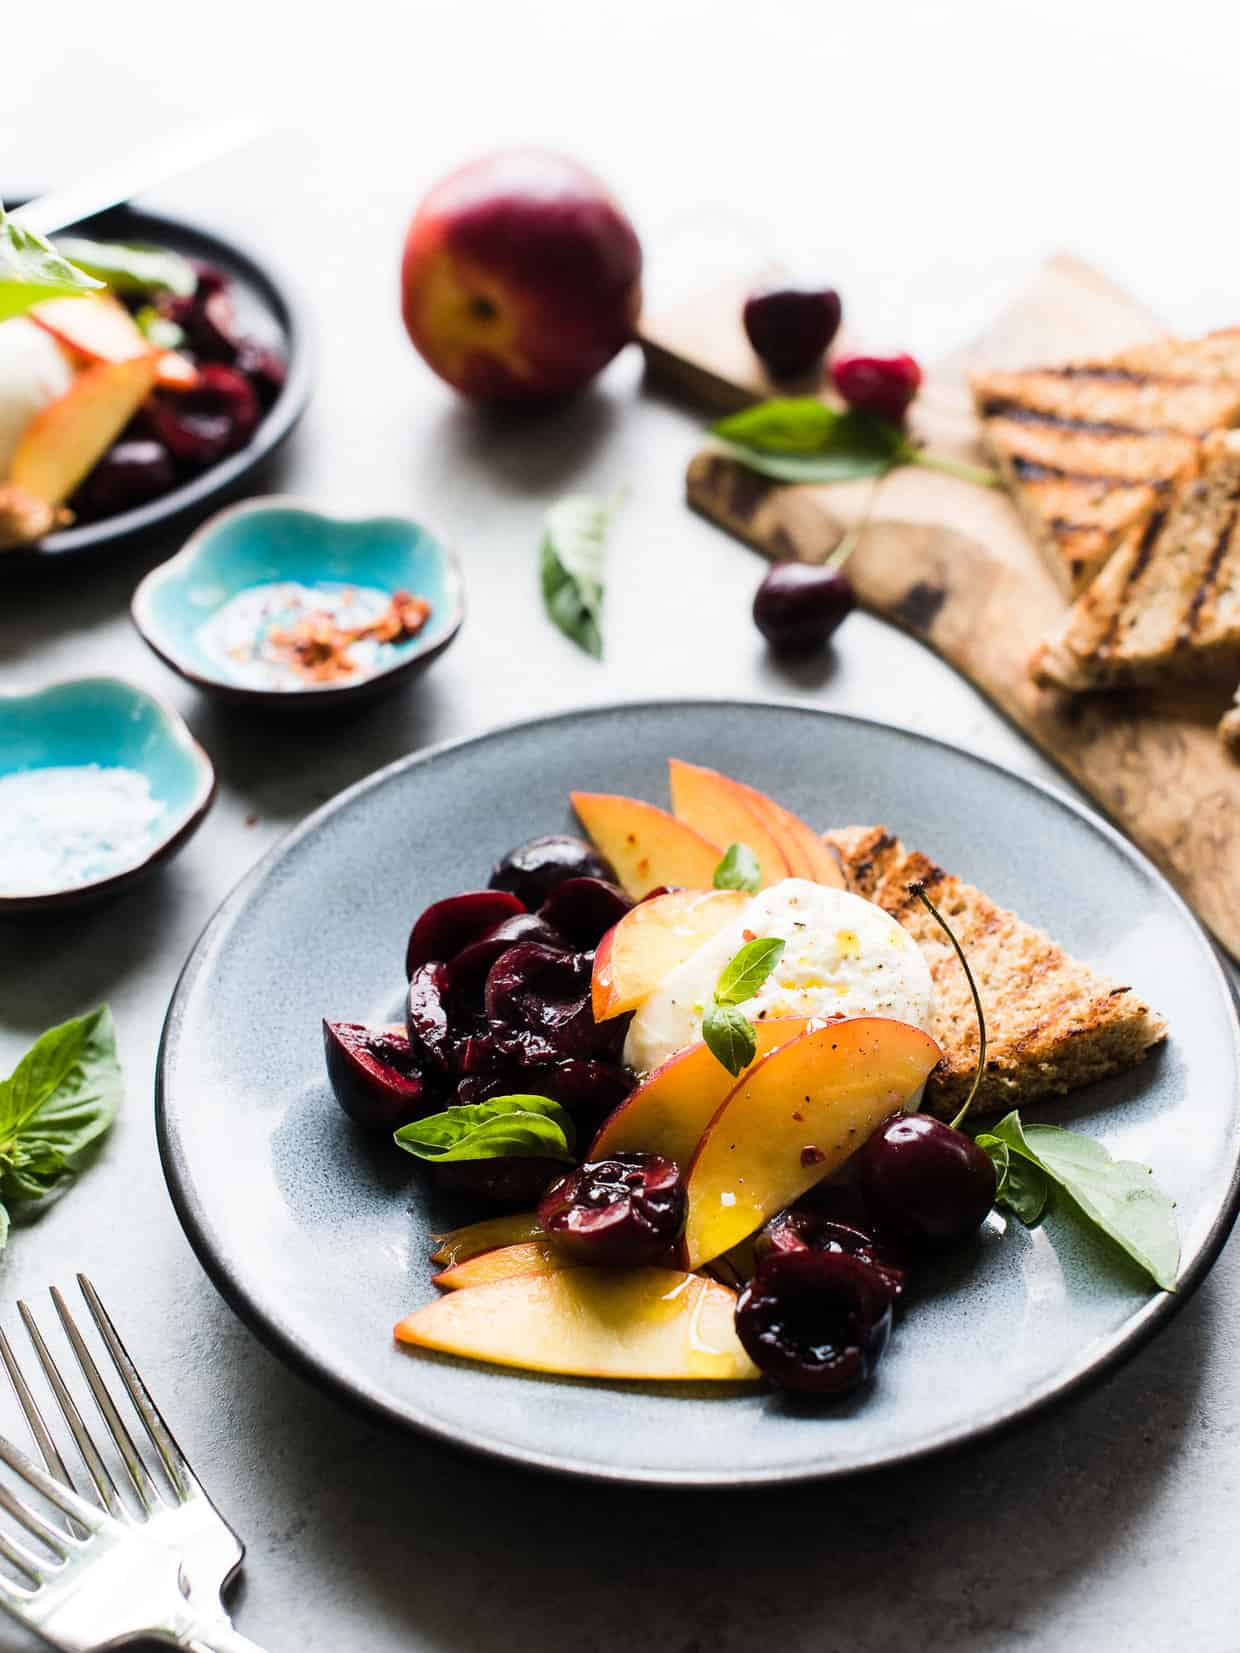 Summer stone fruit, fresh basil, and creamy burrata dressed in a zingy balsamic vinegar and olive oil is the perfect summer appetizer! I used nectarines and cherries, but this will work for any stone fruit you like – try it with plums, peaches, and apricots, too!